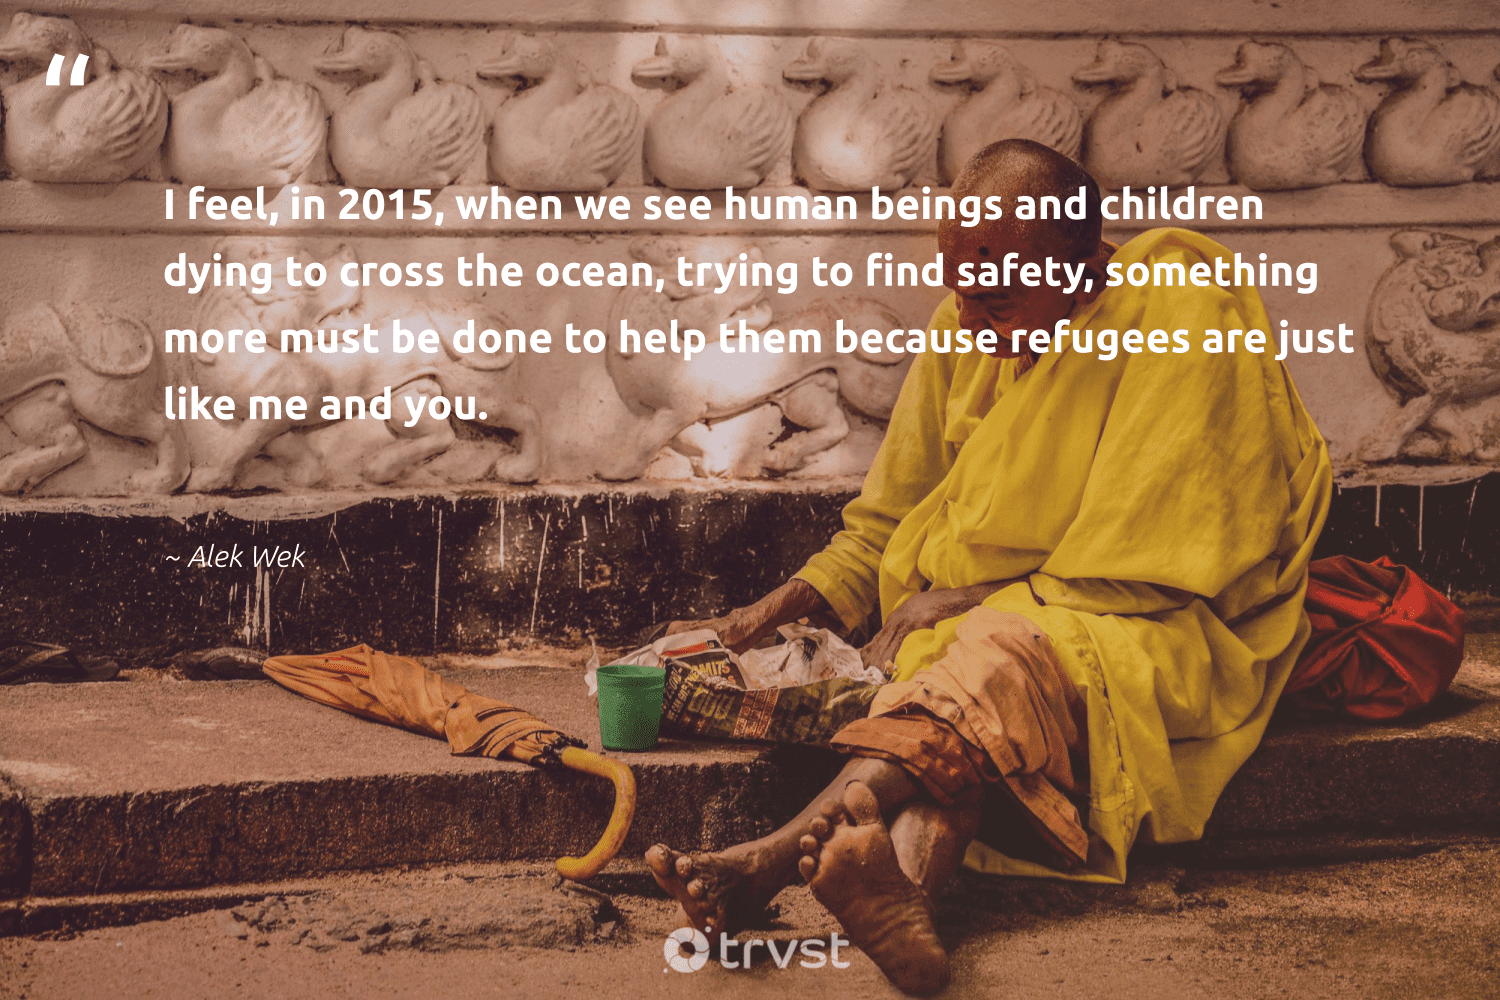 """""""I feel, in 2015, when we see human beings and children dying to cross the ocean, trying to find safety, something more must be done to help them because refugees are just like me and you.""""  - Alek Wek #trvst #quotes #ocean #refugees #children #saveourocean #inclusion #sustainableliving #dogood #river #equalopportunity #wildlifeplanet"""